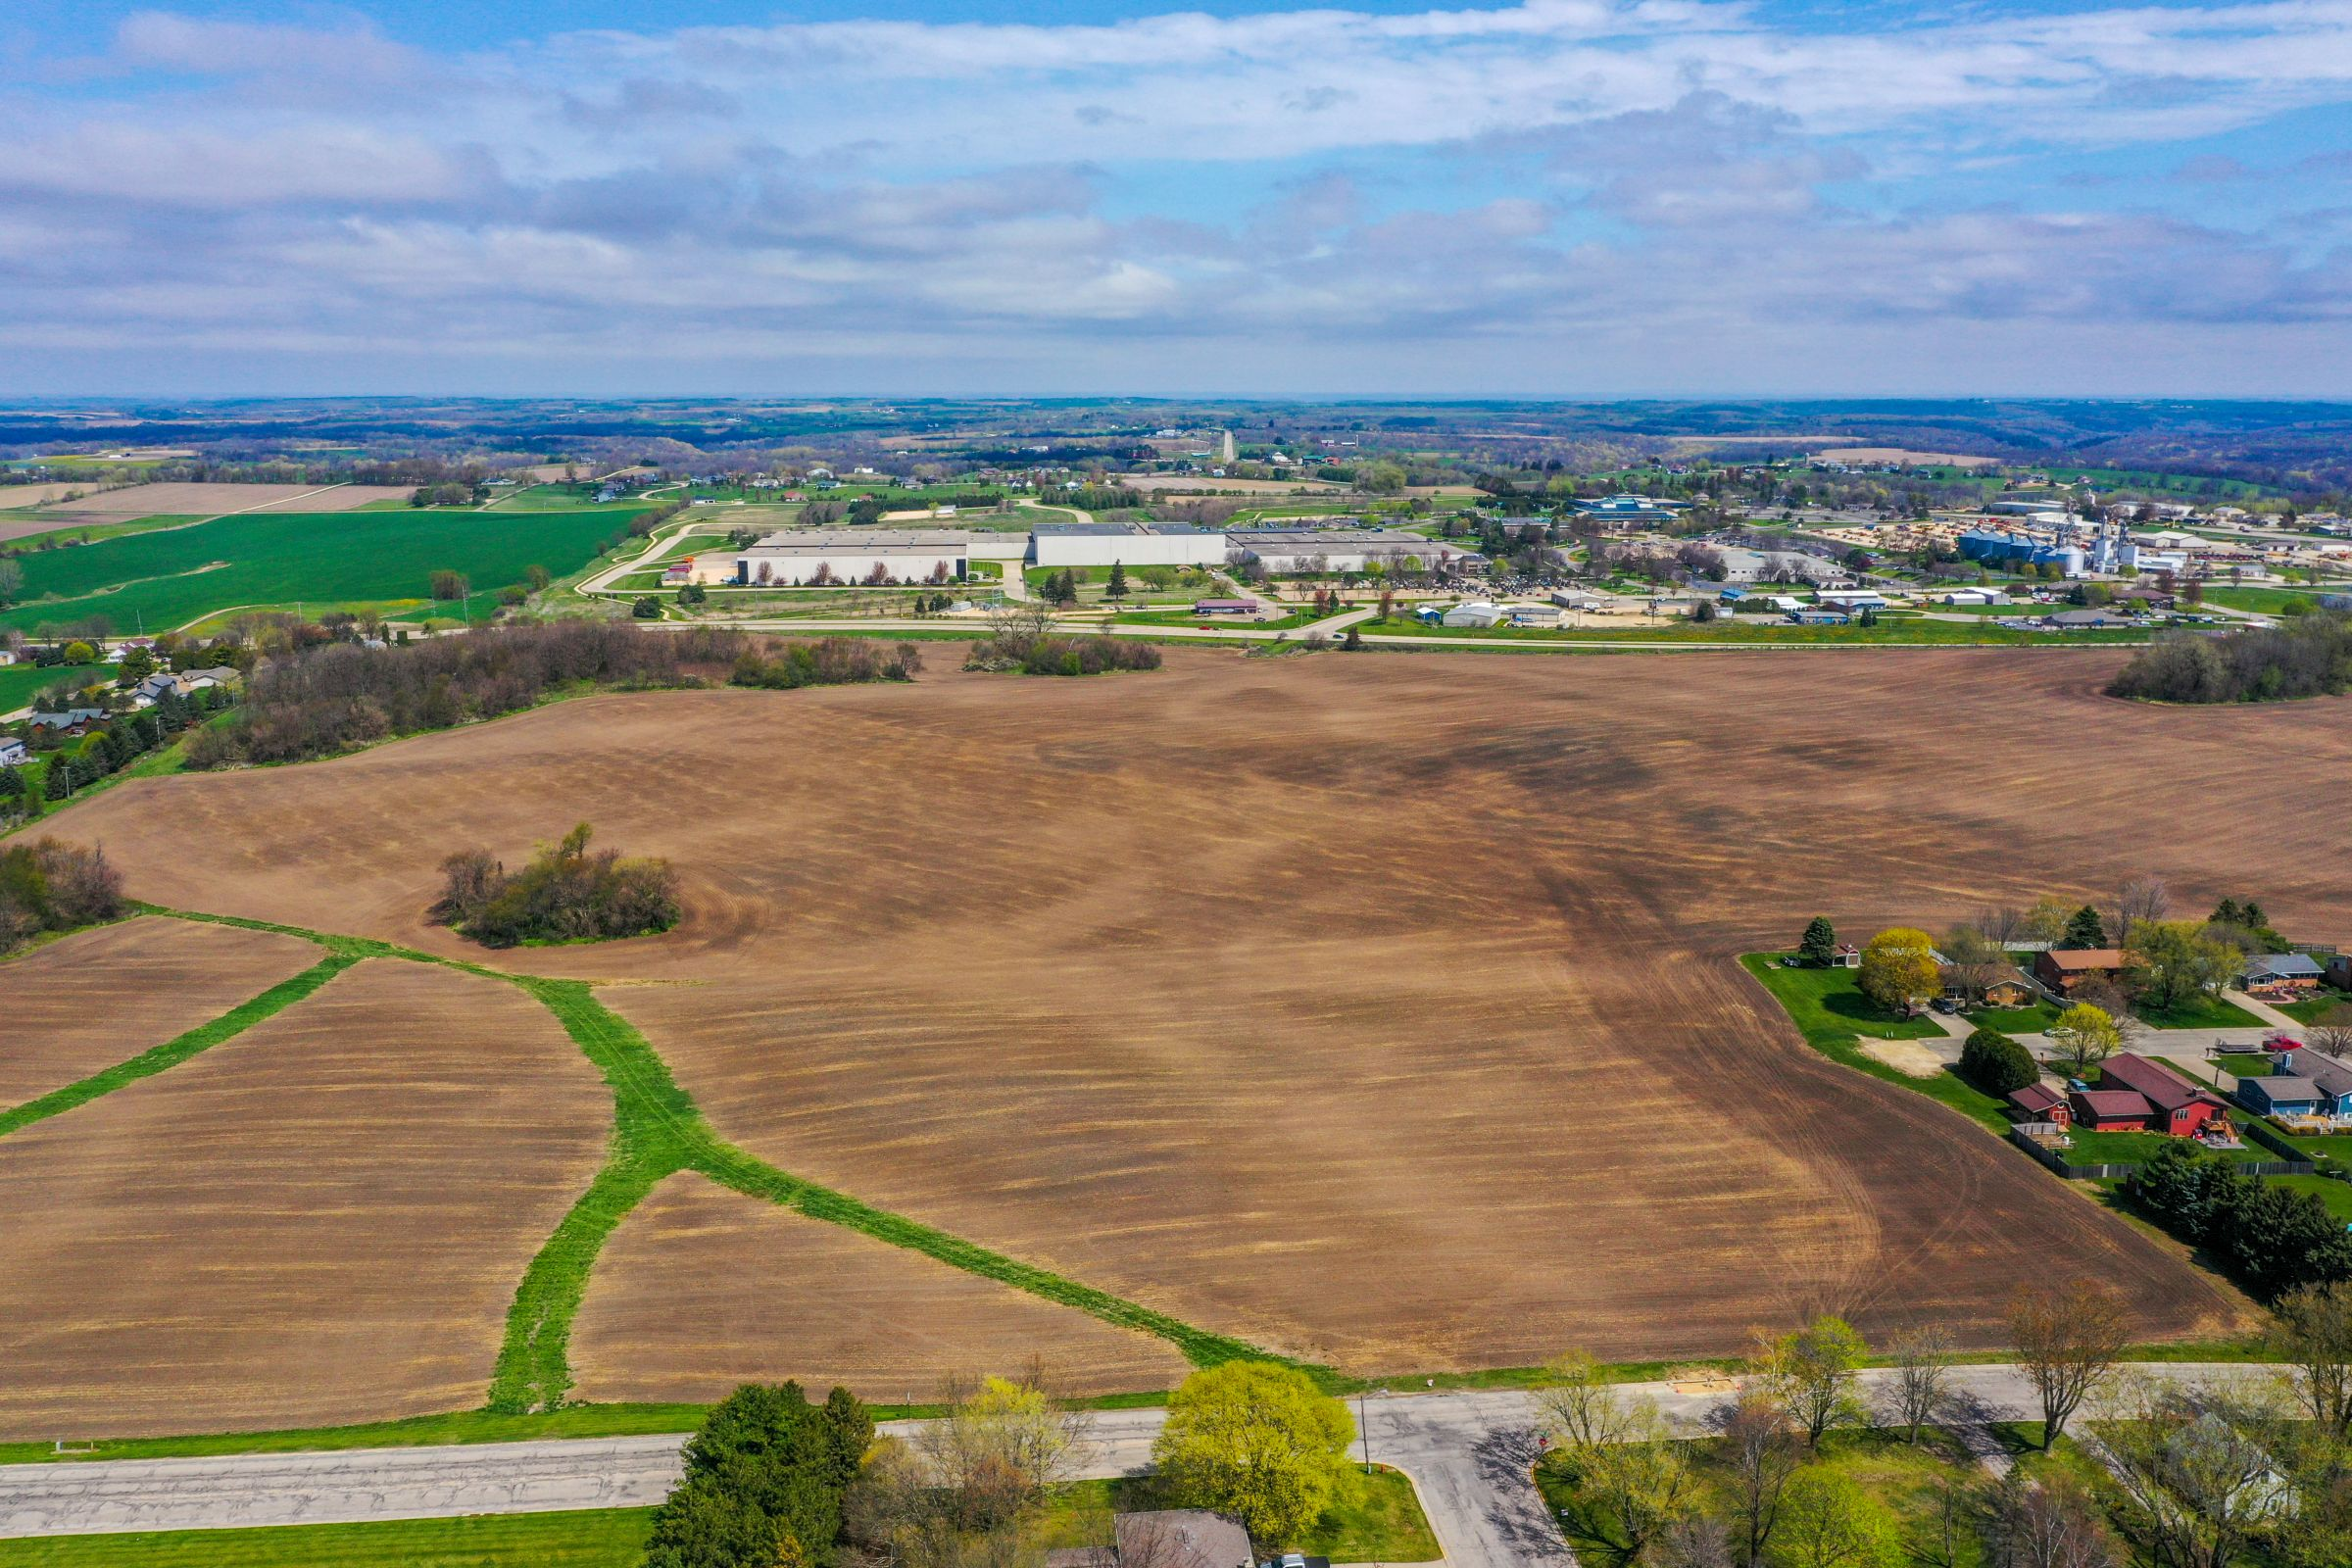 development-land-commercial-iowa-county-wisconsin-152-acres-listing-number-15474-1-2021-05-18-160116.jpg